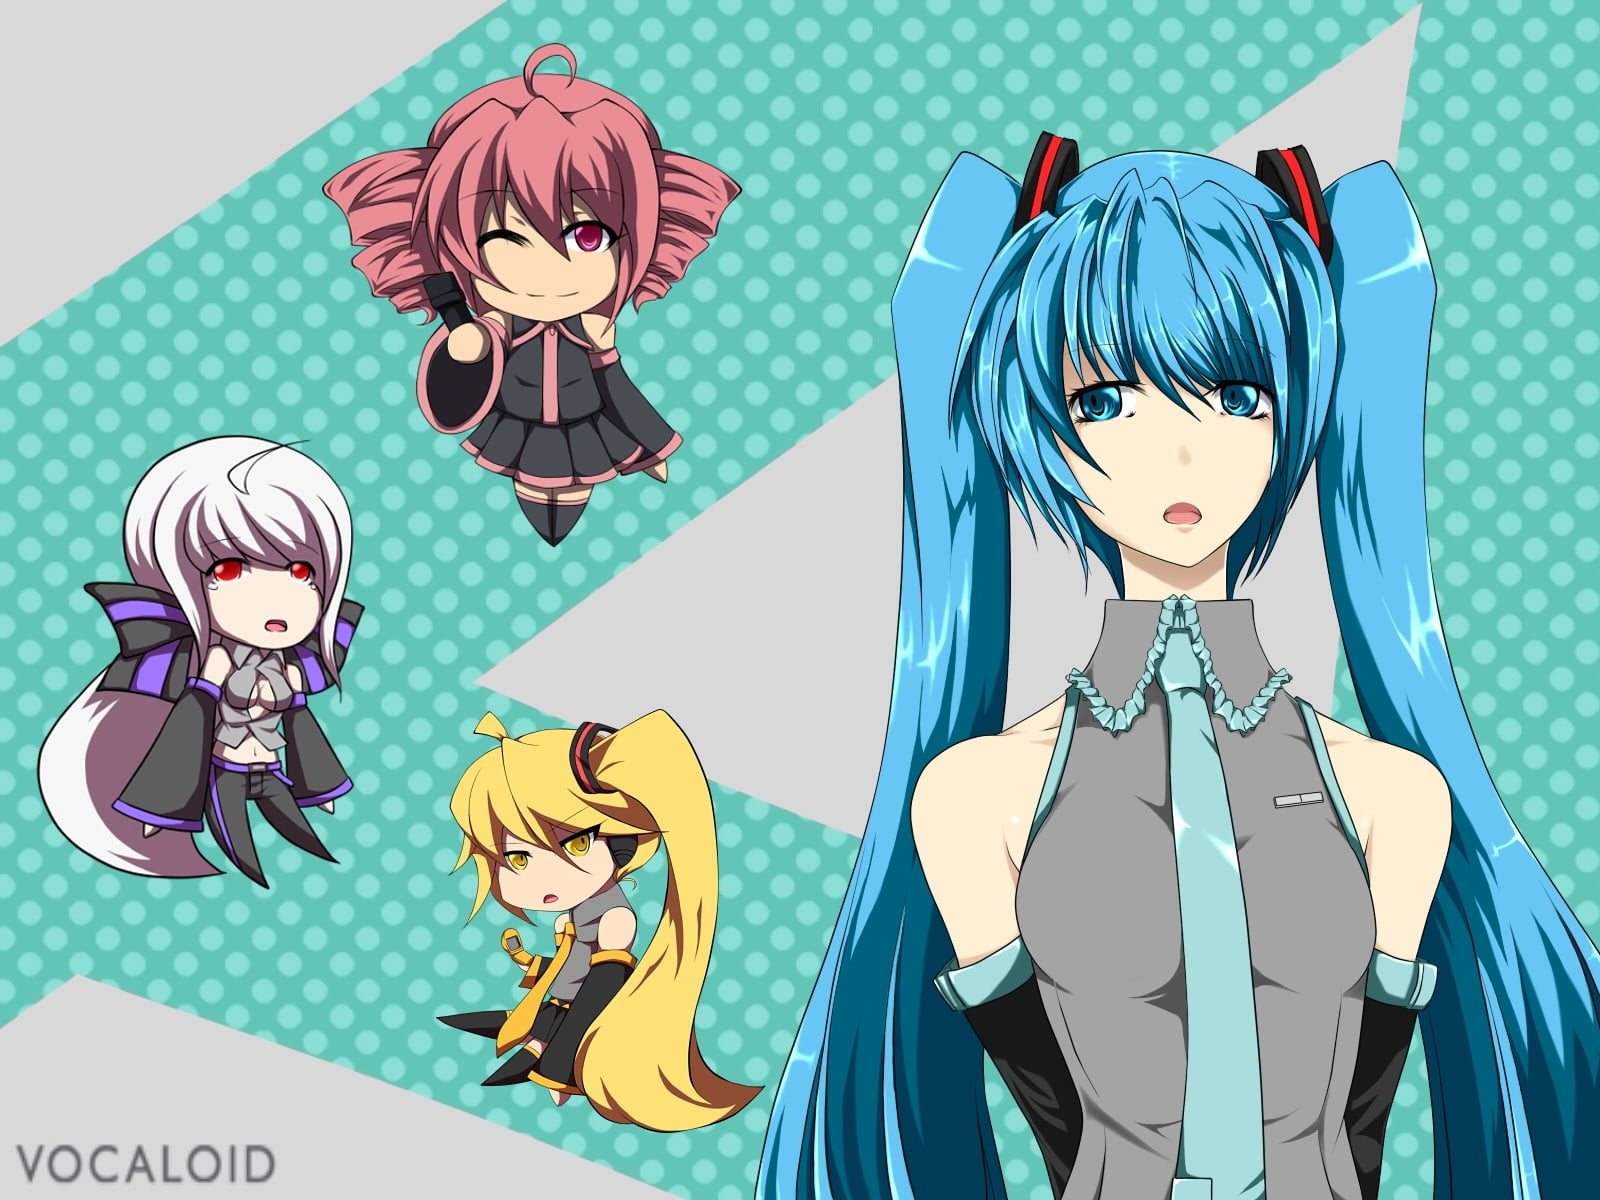 vocaloid characters hd wallpaper